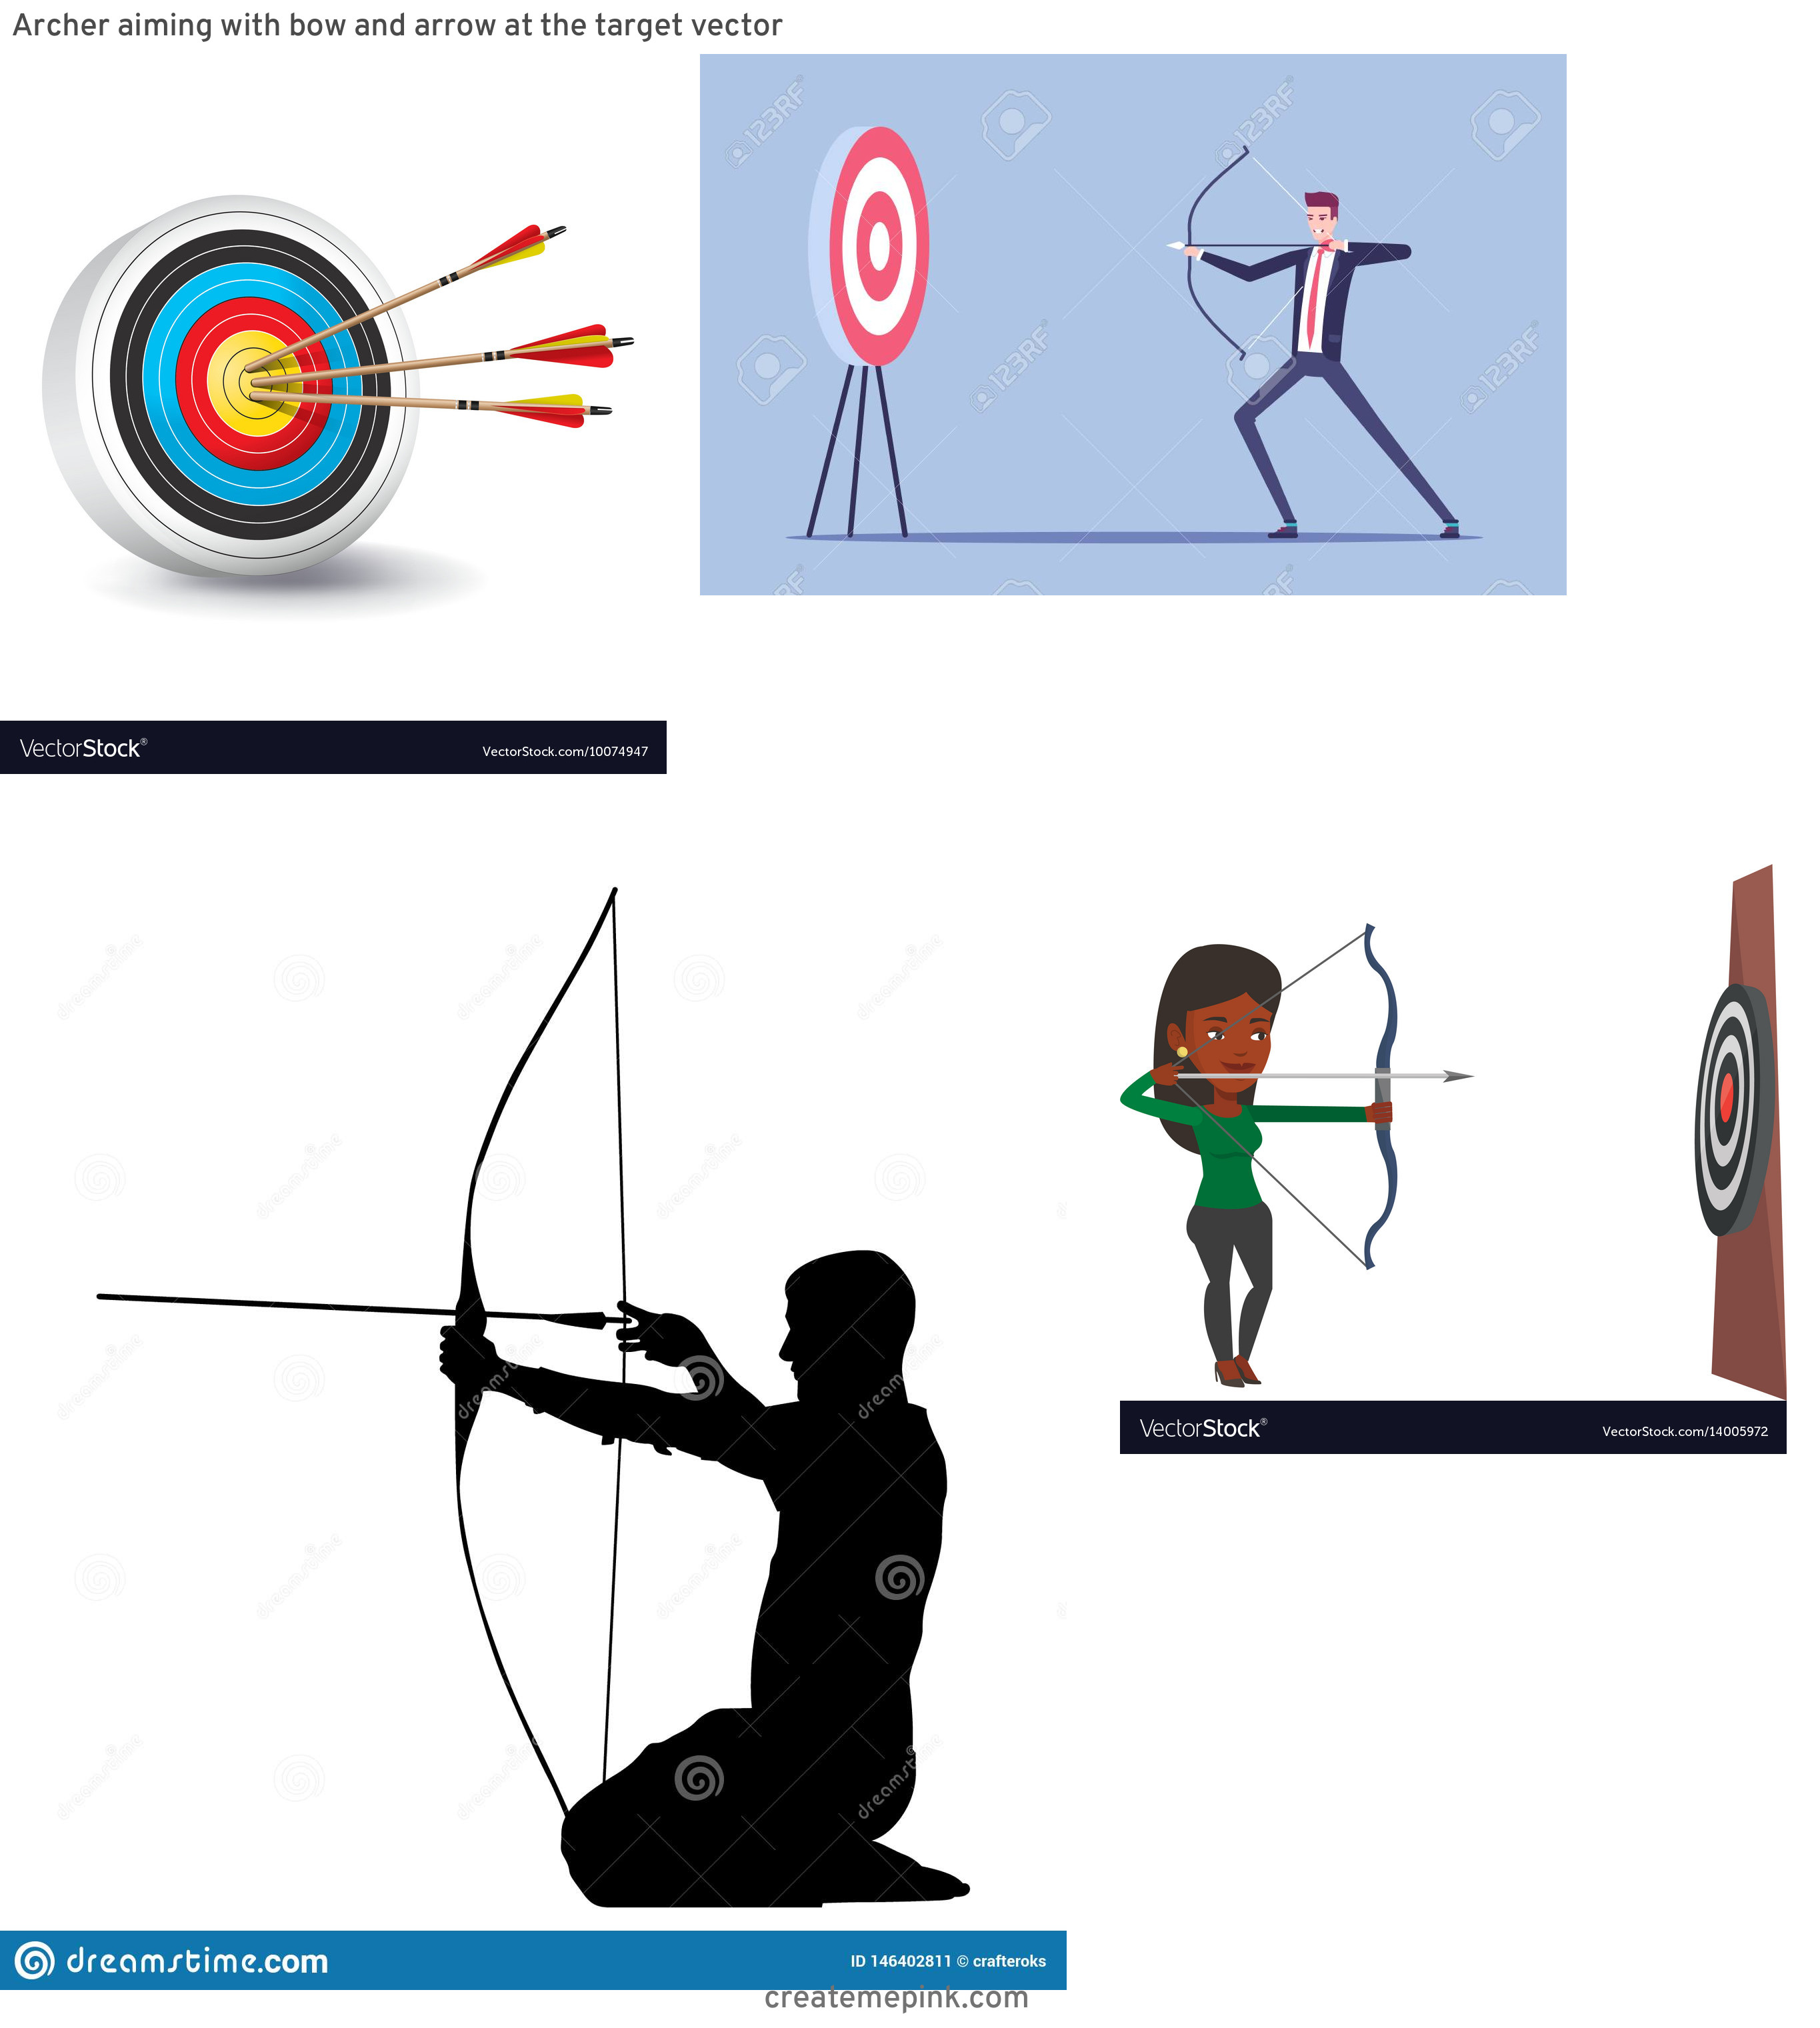 Target Bow And Arrow Vector: Archer Aiming With Bow And Arrow At The Target Vector